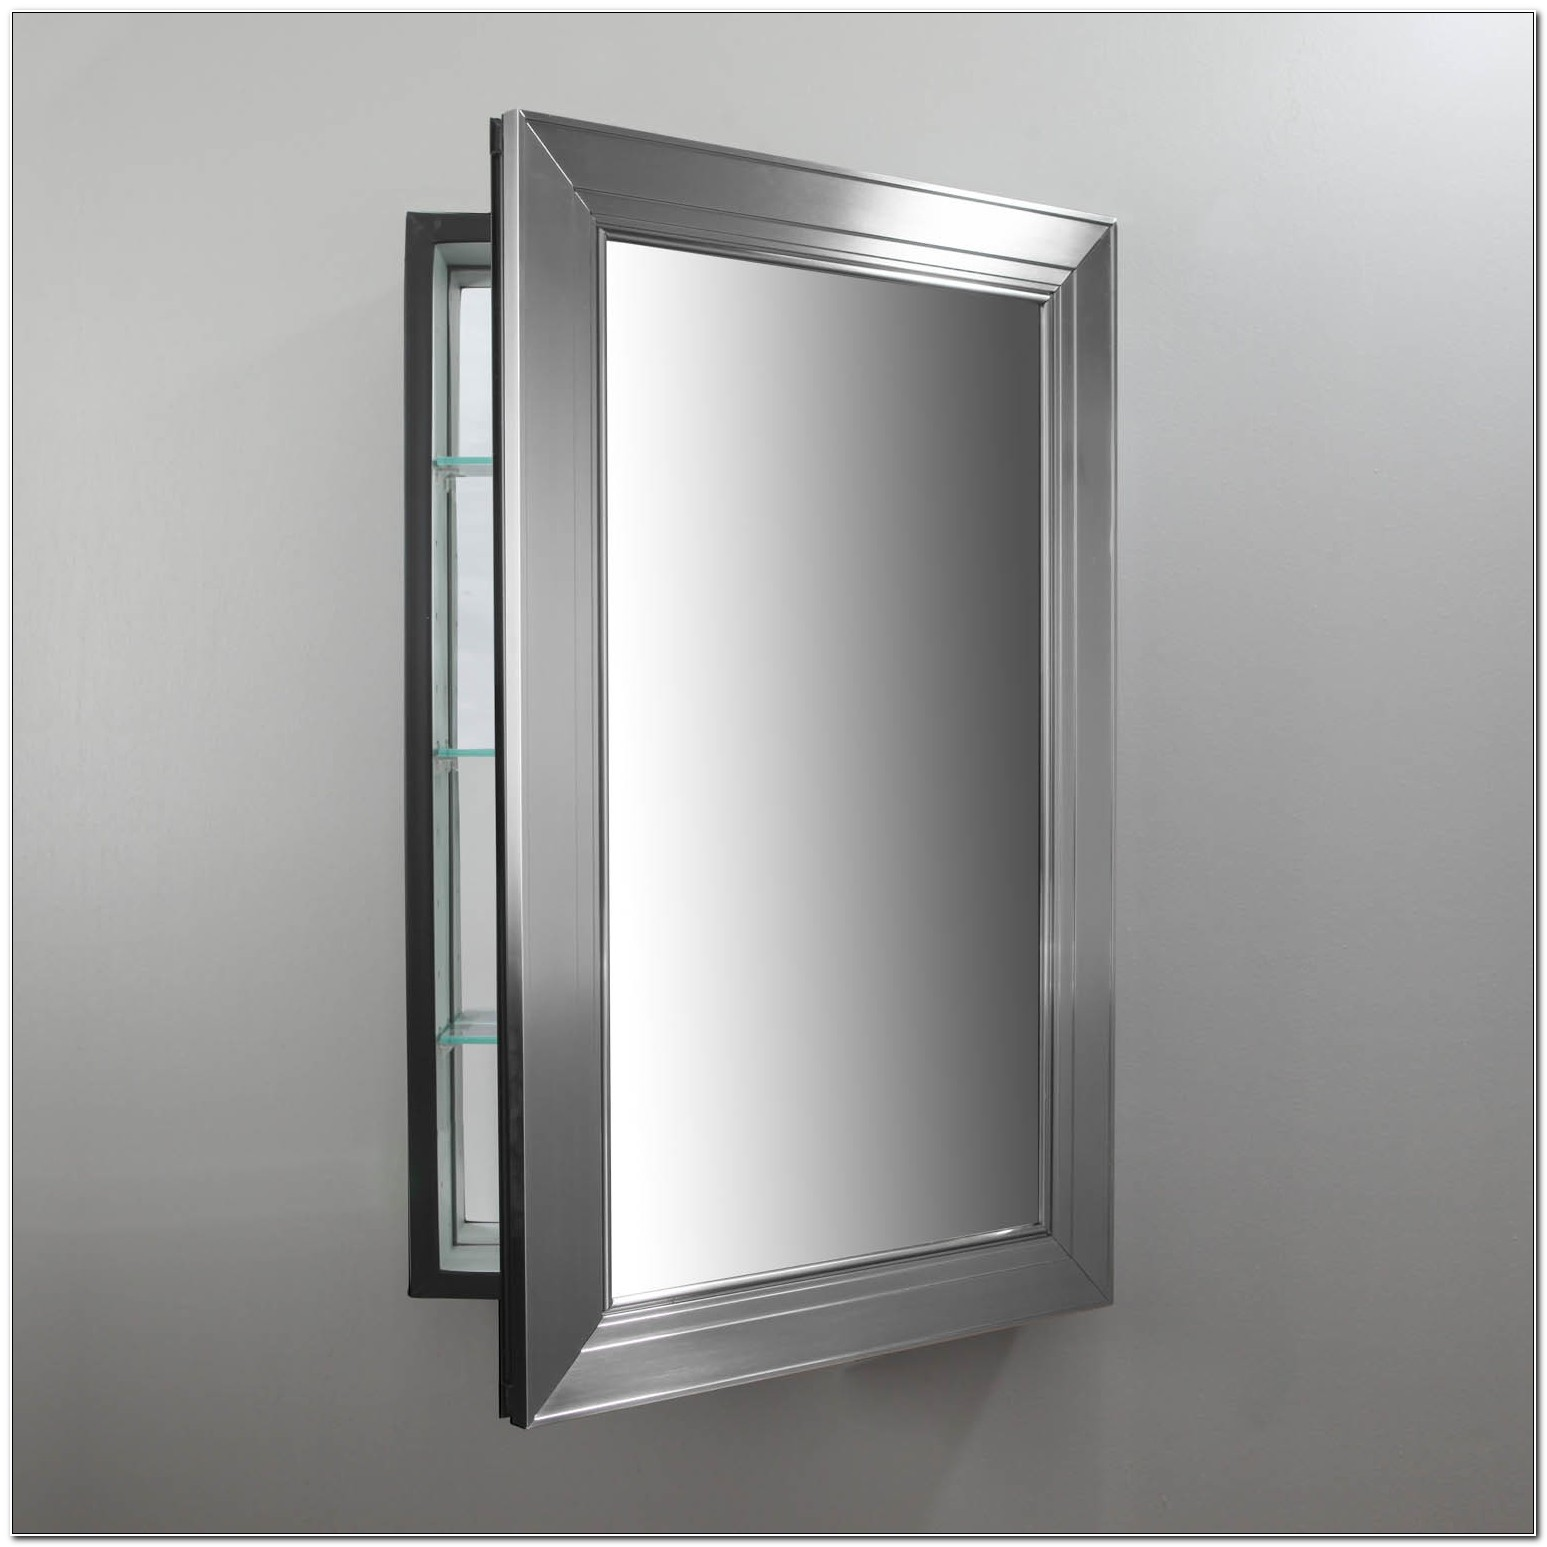 Framed Recessed Medicine Cabinets With Mirrors